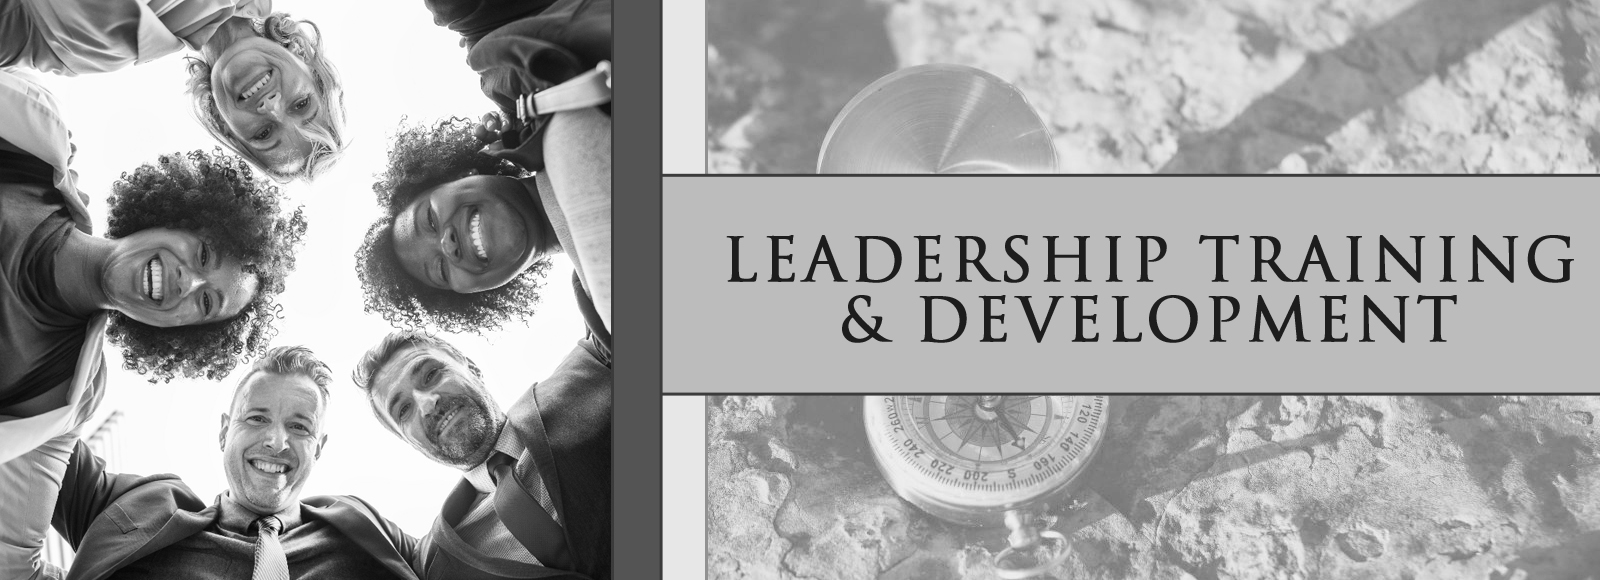 Leadership & Talent Development